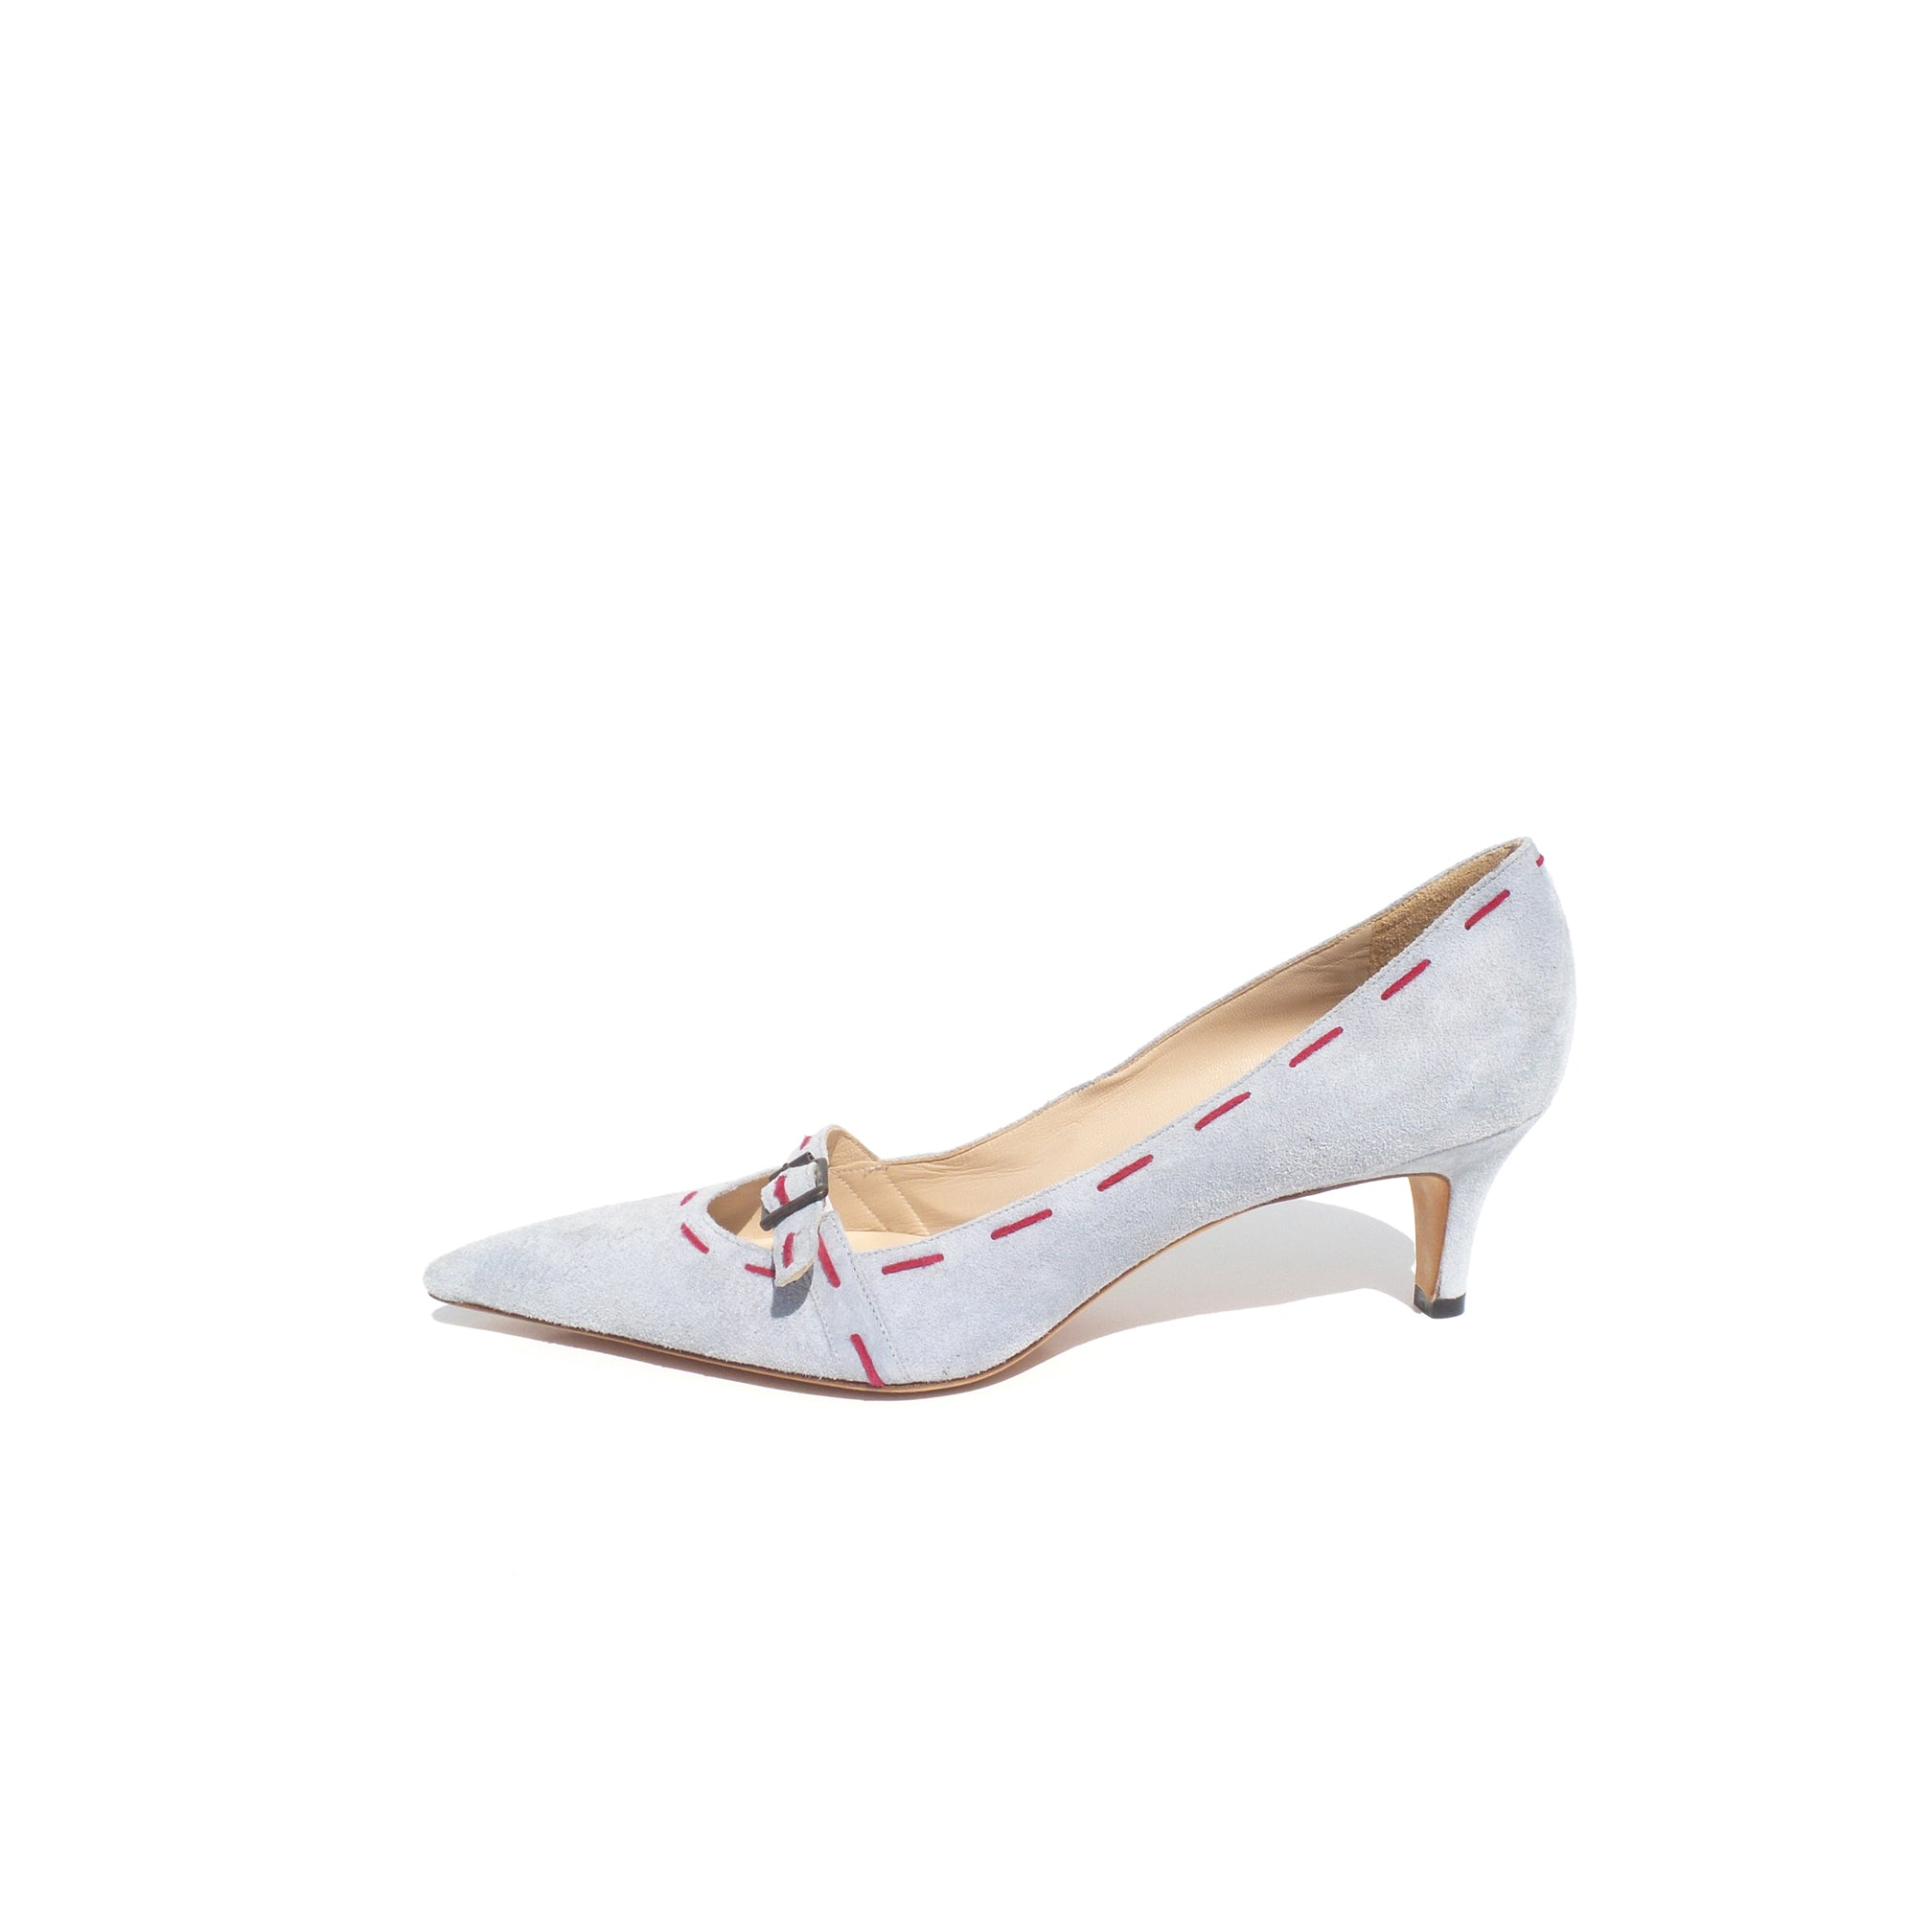 978753d4ef7 Sold' MANOLO BLAHNIK Light Blue Suede Pink Stitched Buckle Point Toe ...